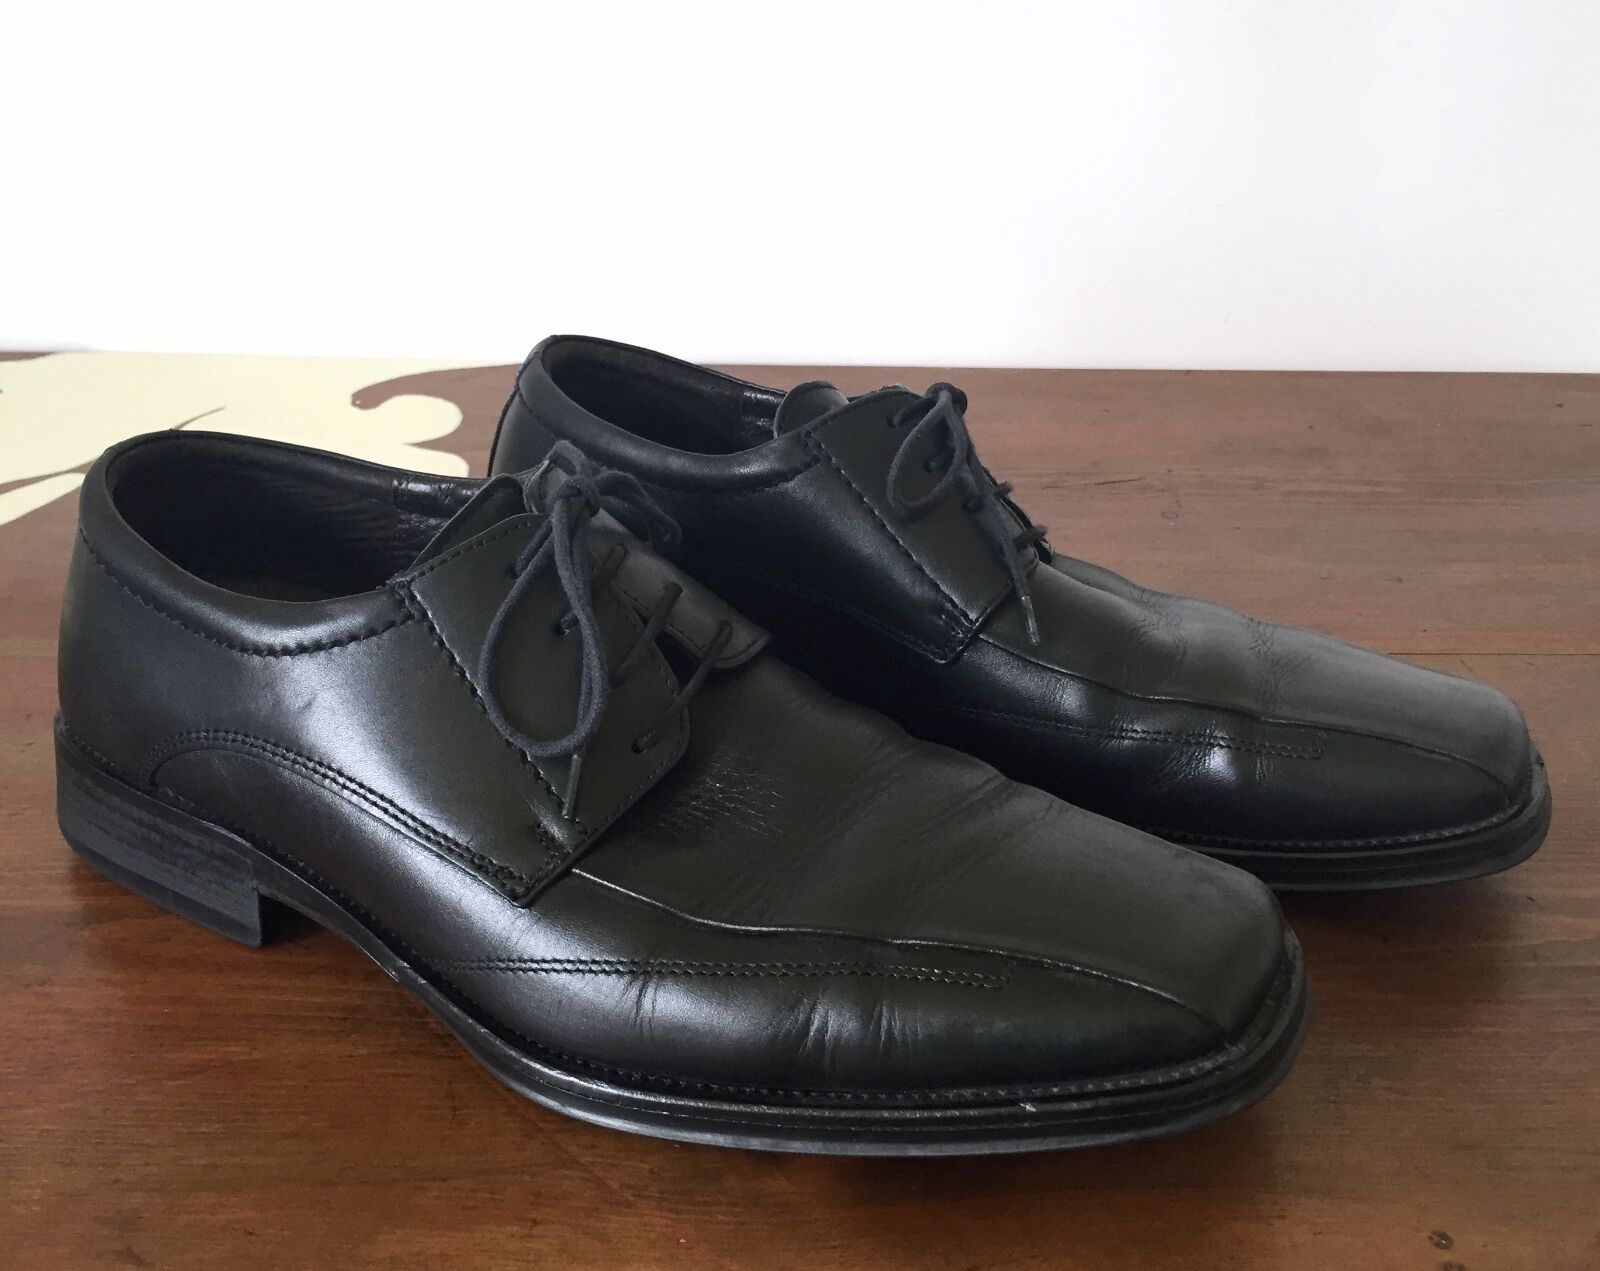 Johnston & Murphy Men's Black Leather Runoff Oxfords Dress Lace Up shoes Sz 10